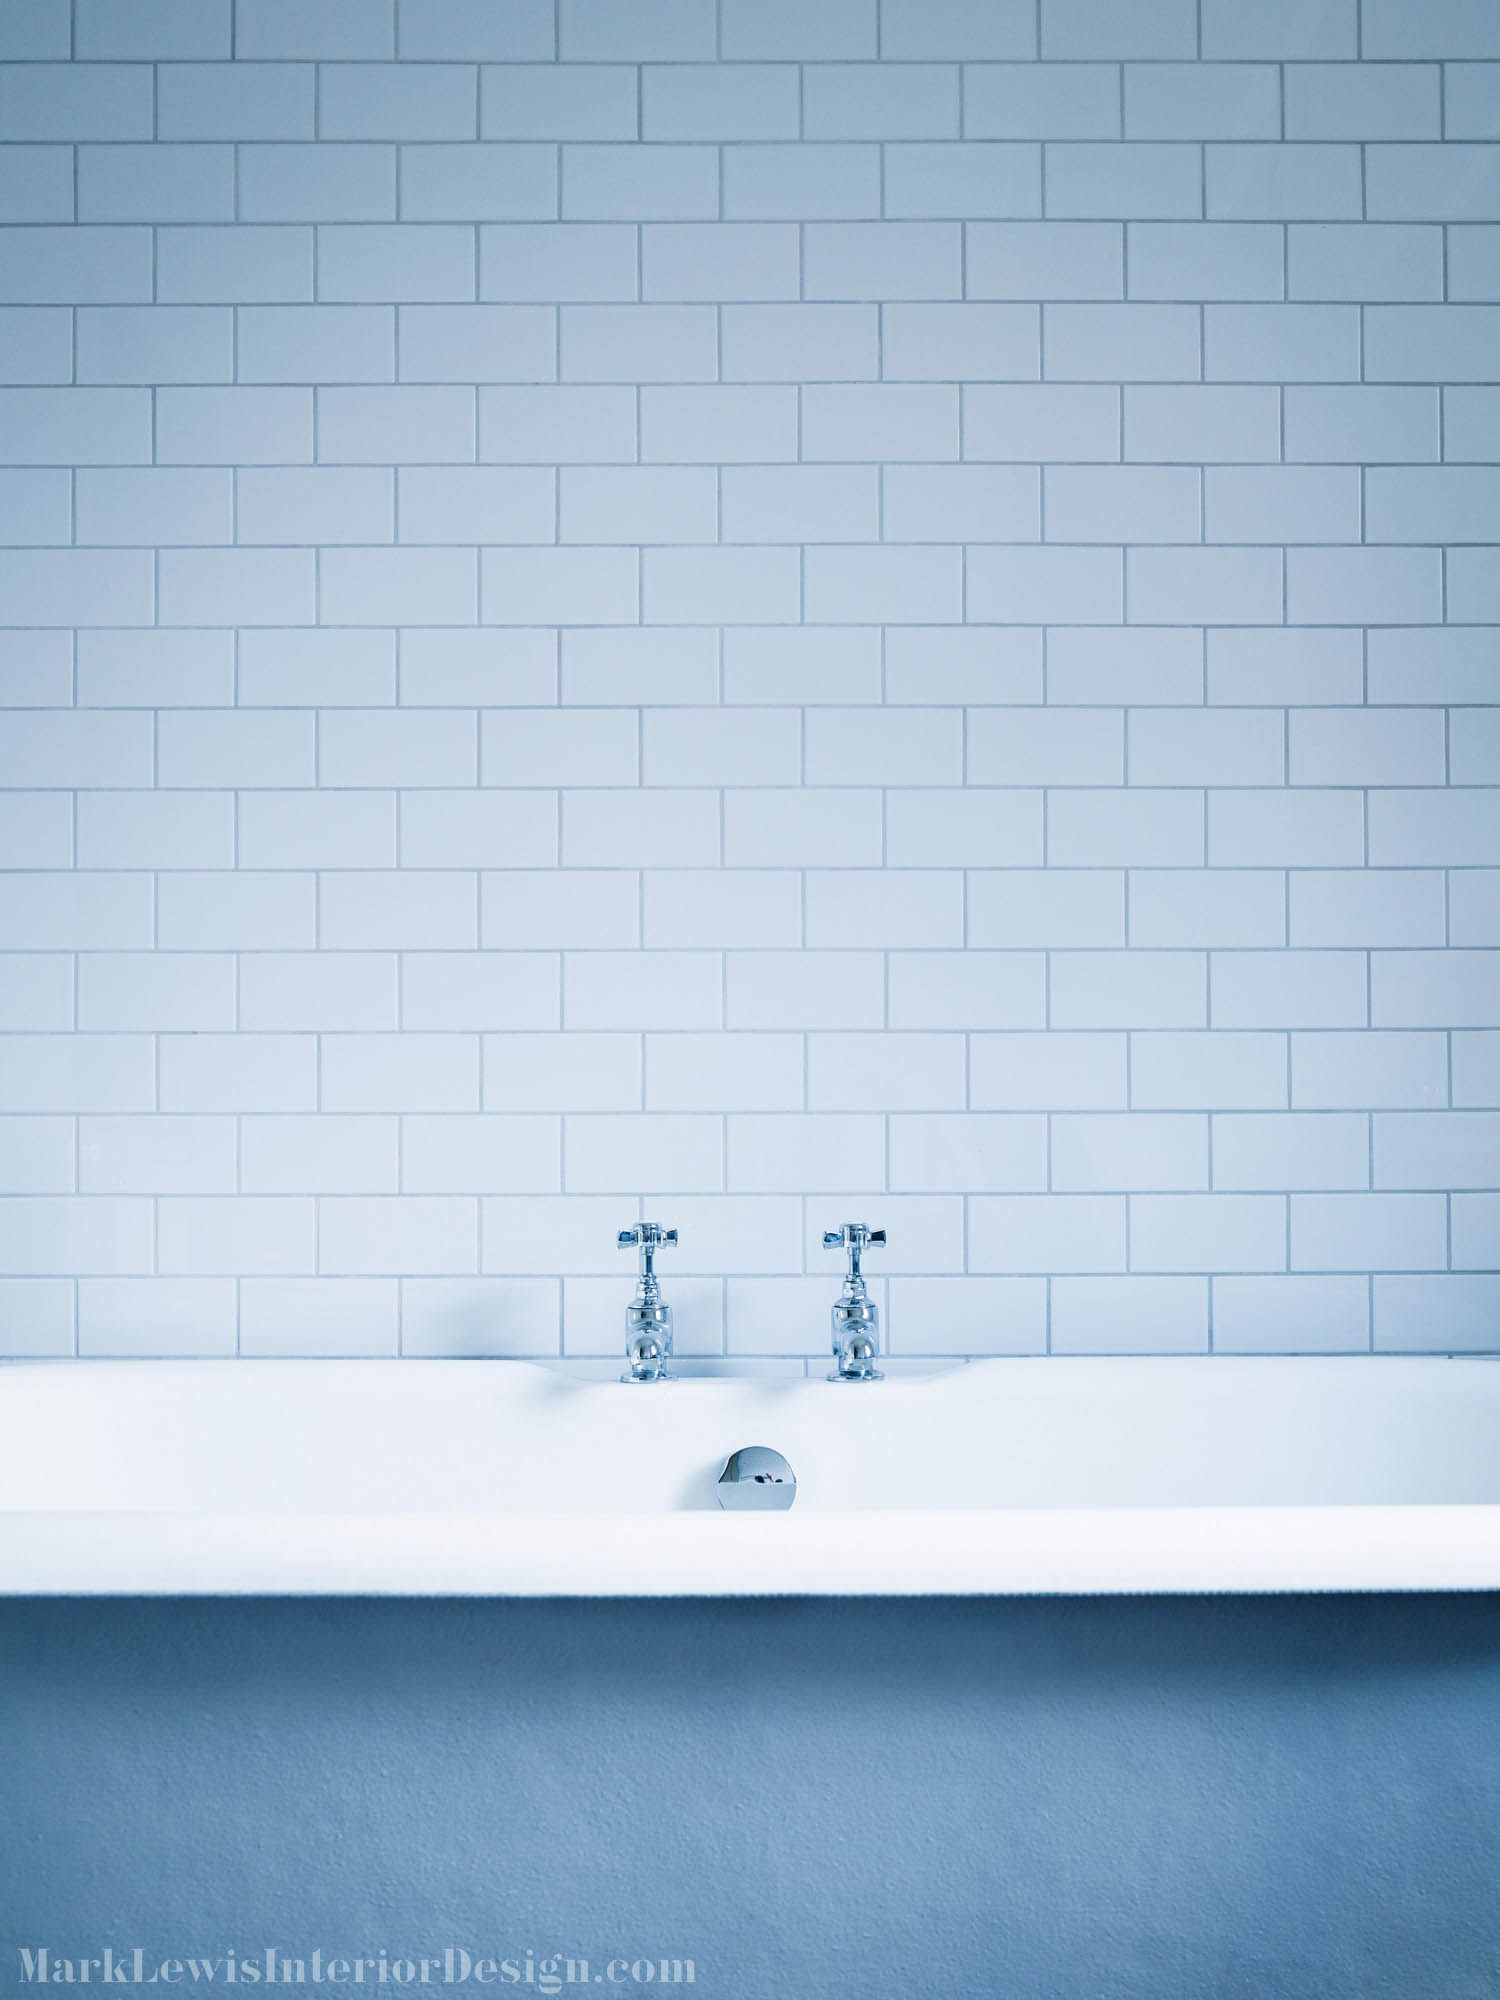 The atmosphere of a bathroom from a previous era is complete with a ...